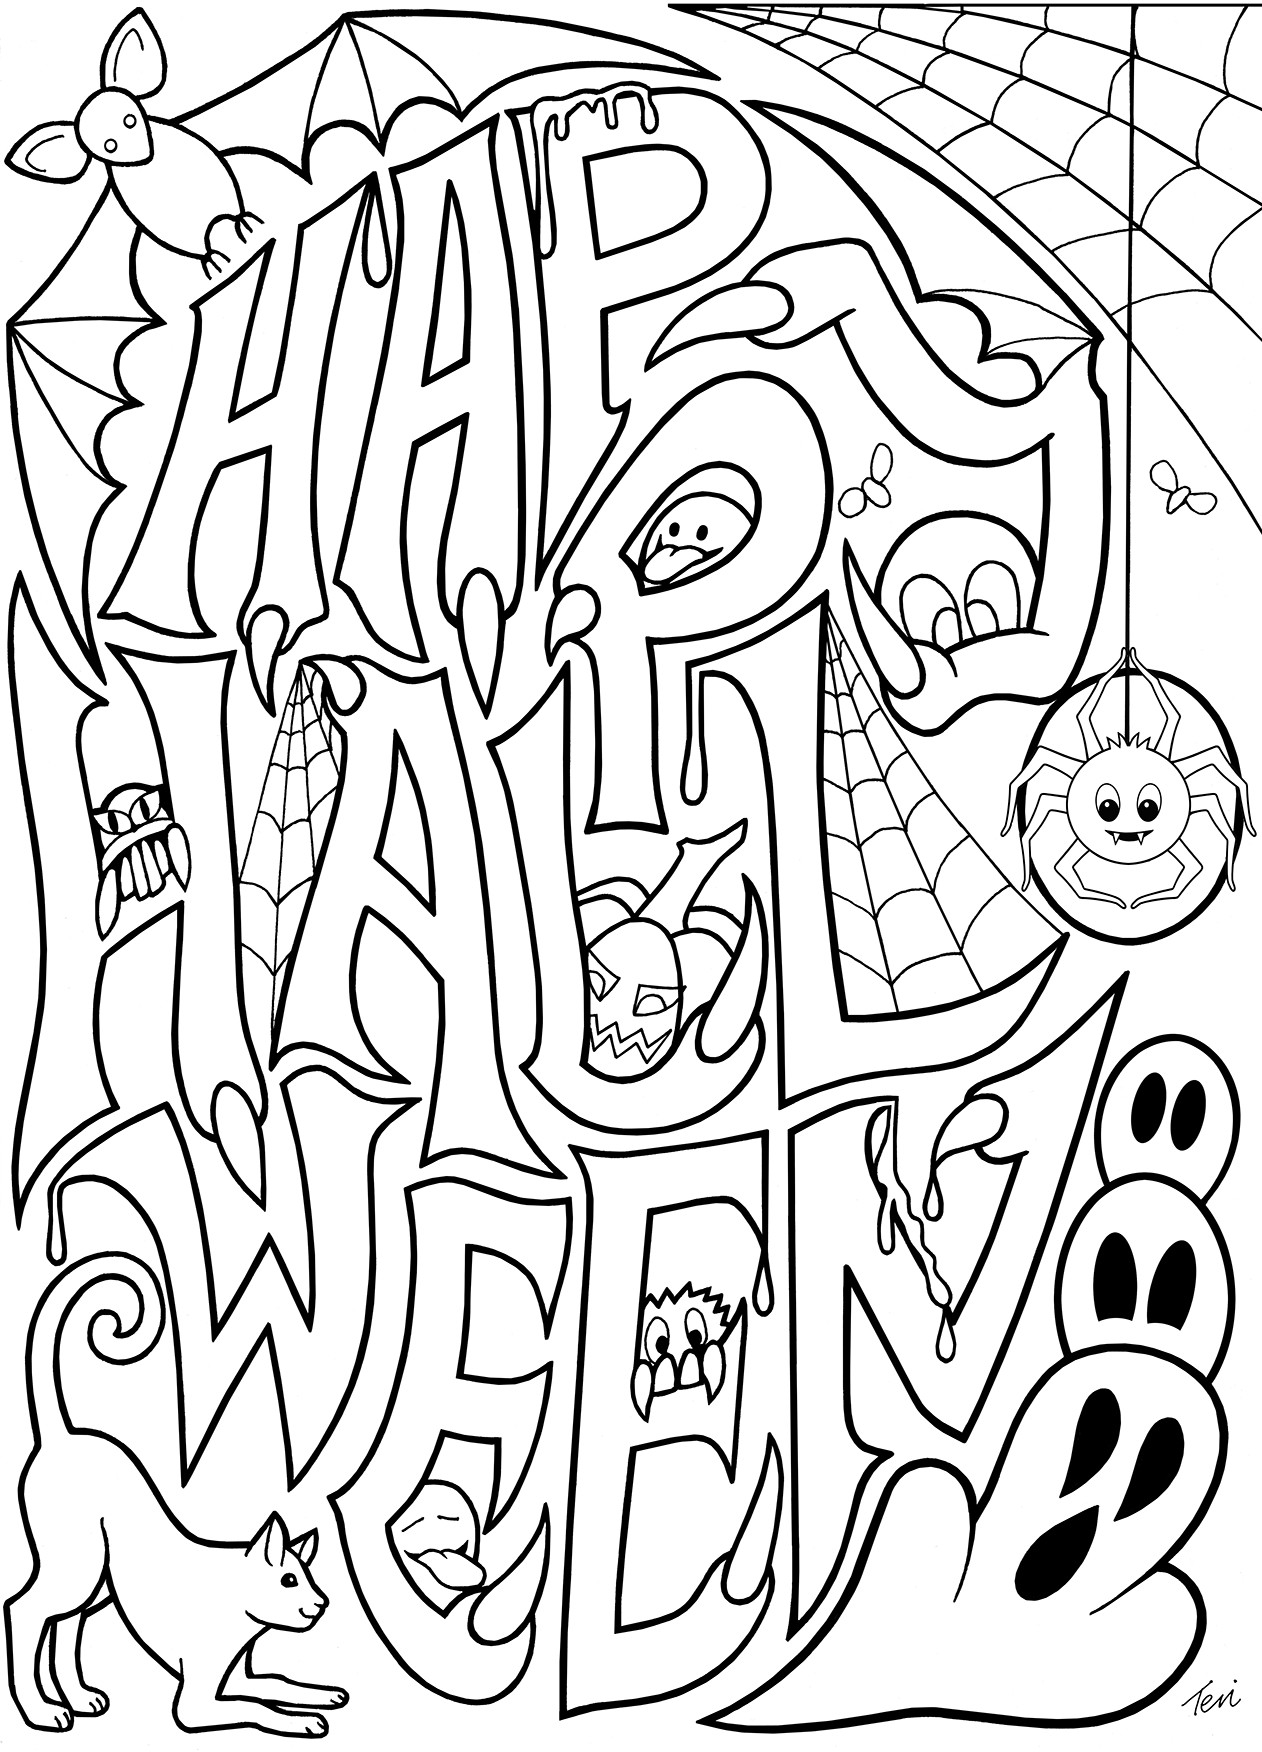 Halloween Coloring Pages To Print  Free Adult Coloring Book Pages Happy Halloween by Blue